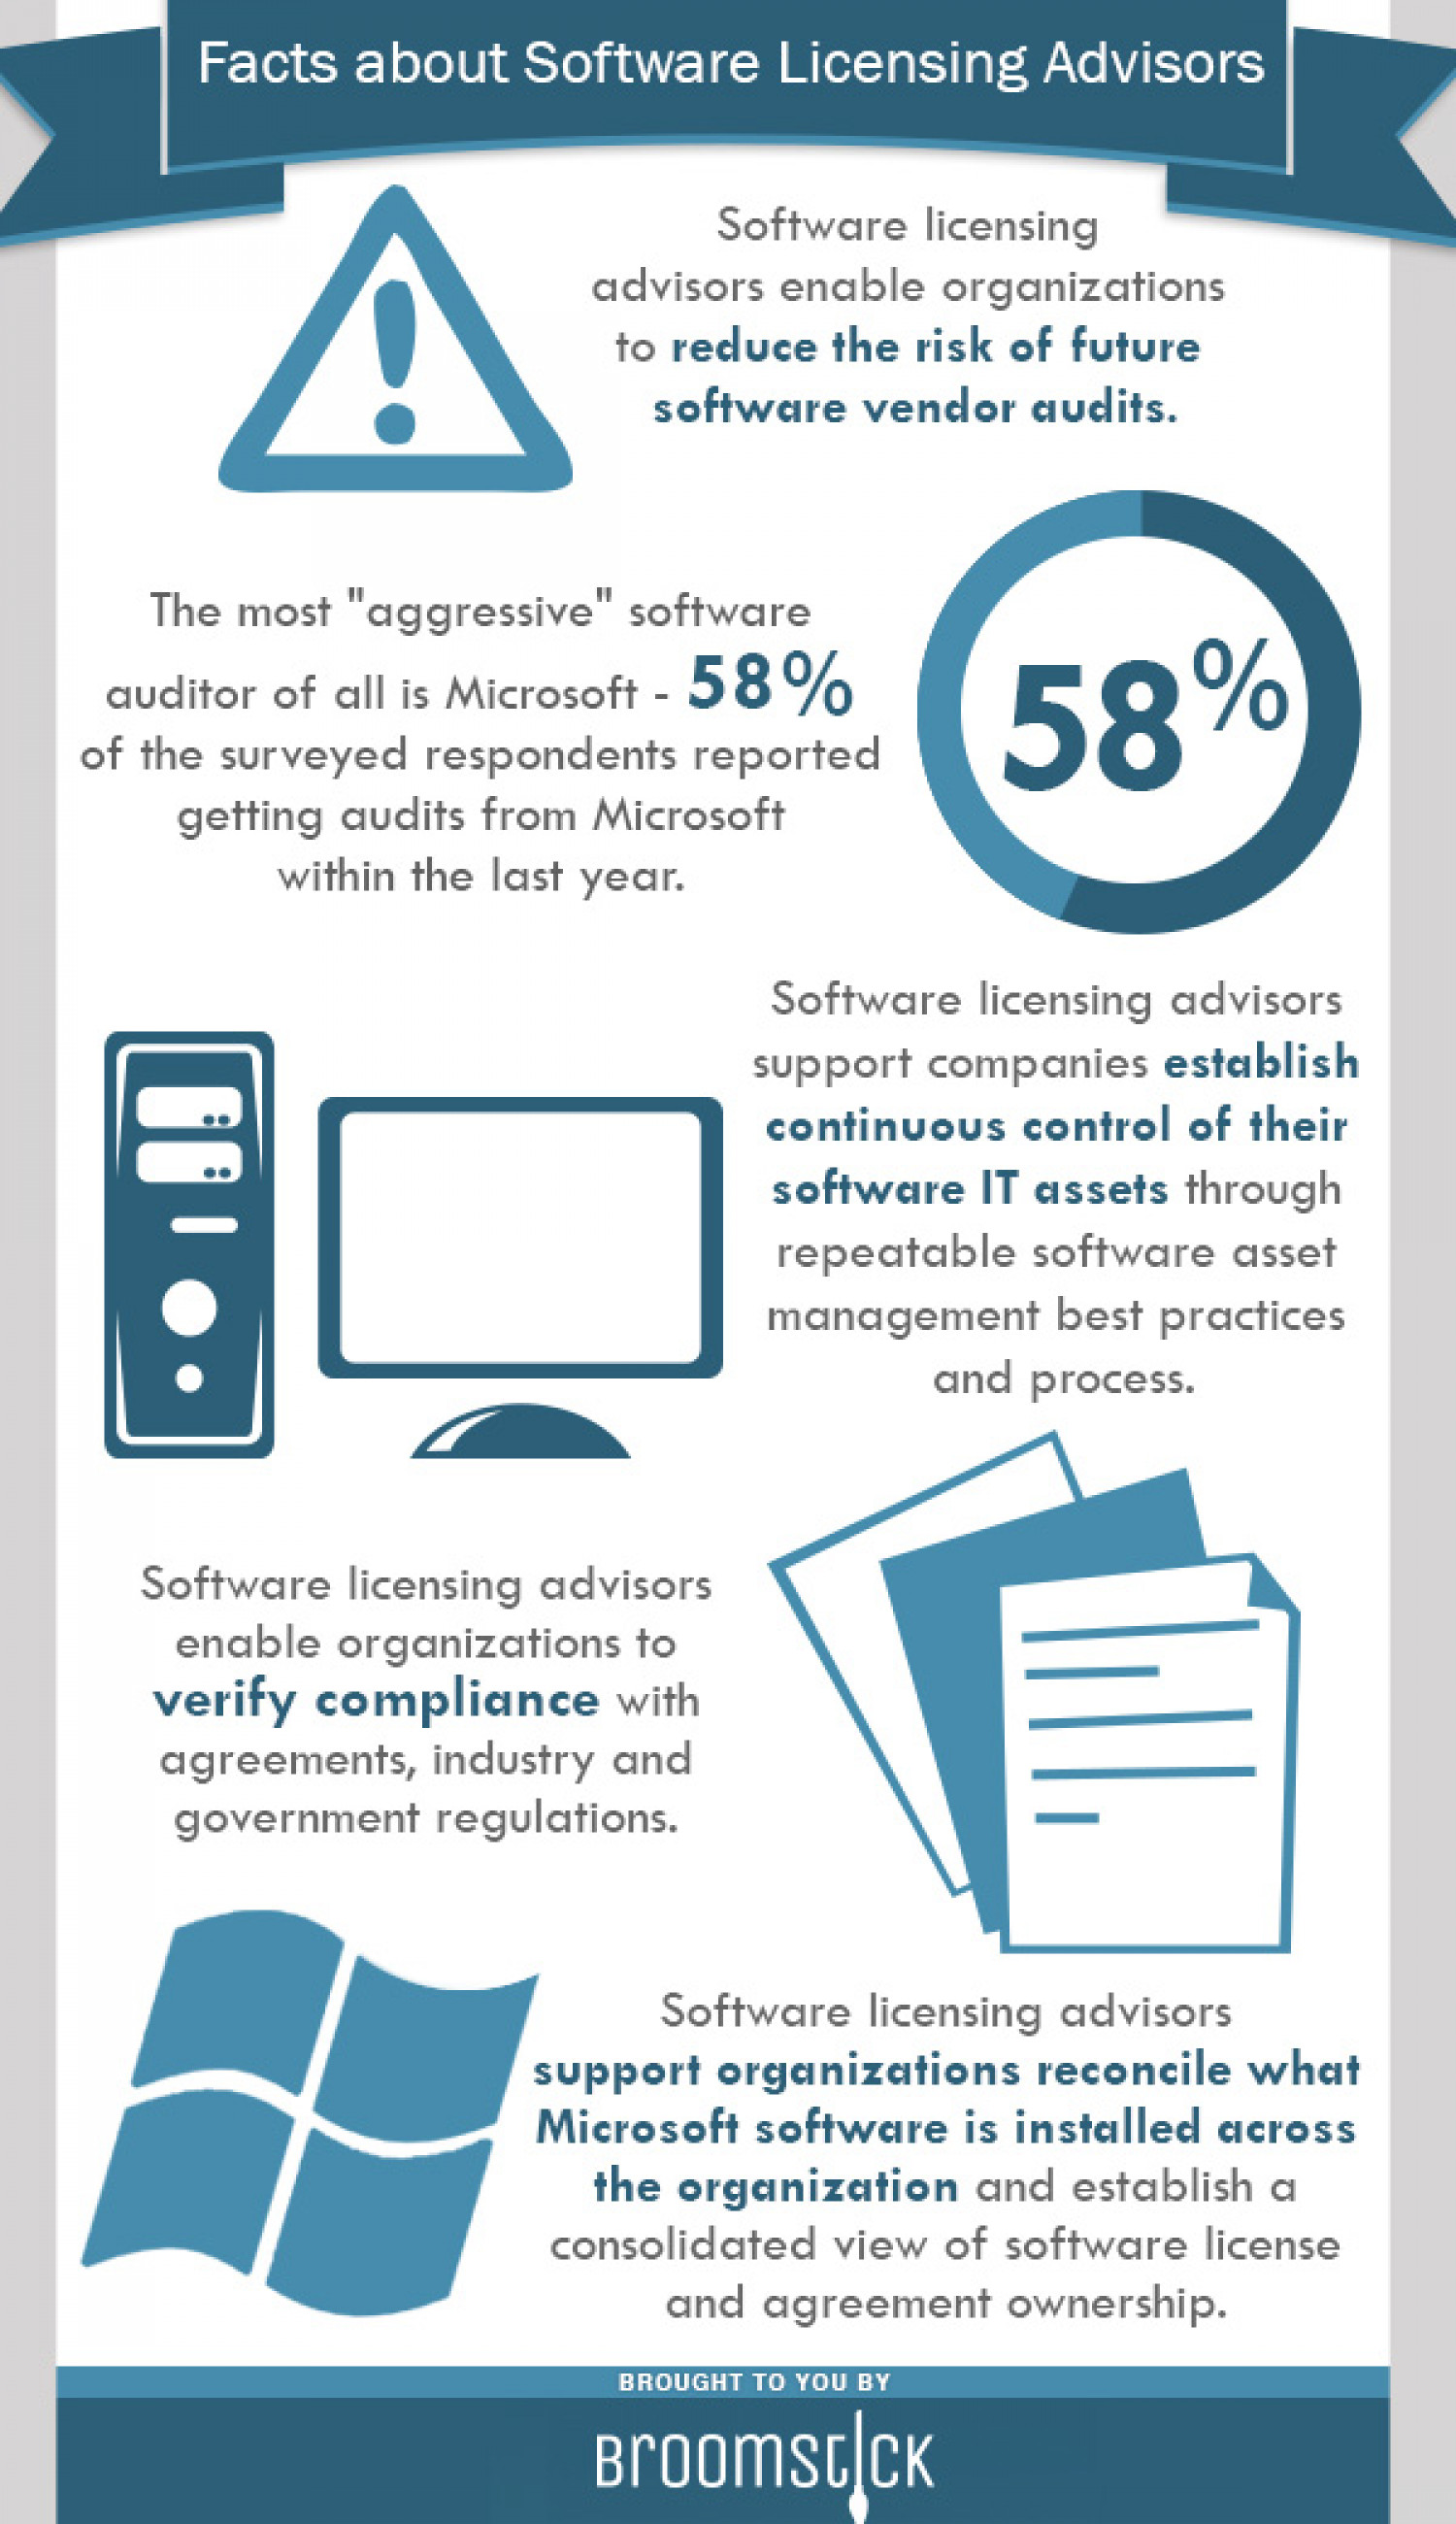 Facts about Software Licensing Advisors | Visual ly